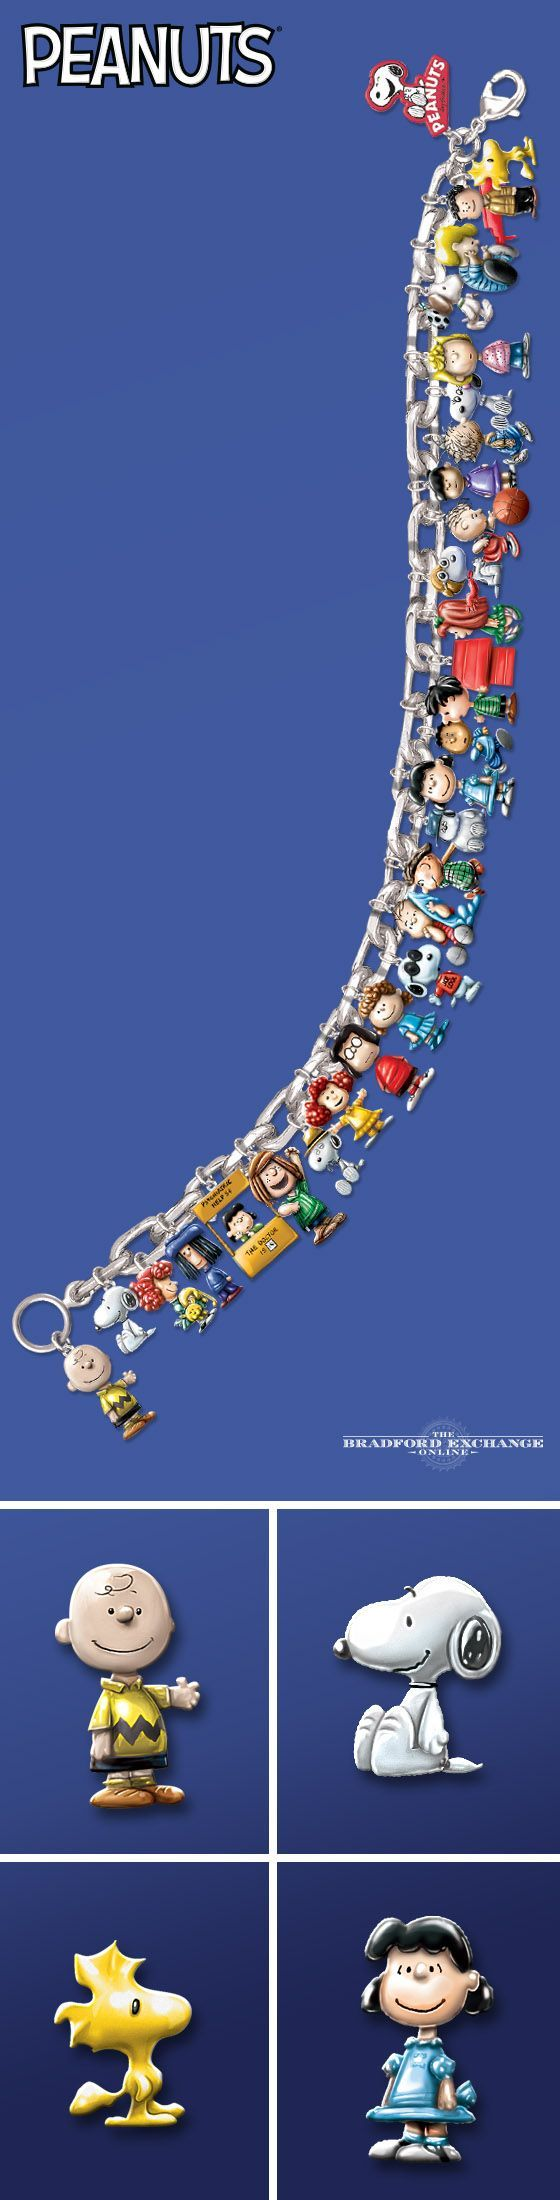 Ultimate PEANUTS Charm Bracelet With 30 Enameled Charms Wear the ultimate PEANUTS tribute! This first-of-its-kind collector's edition charm bracelet features 30 handcrafted enamel charms with some of your favorite characters, including Charlie Brown, Snoopy, Woodstock, Lucy, Linus and more.Wear the ultimate PEANUTS tribute! Thi...